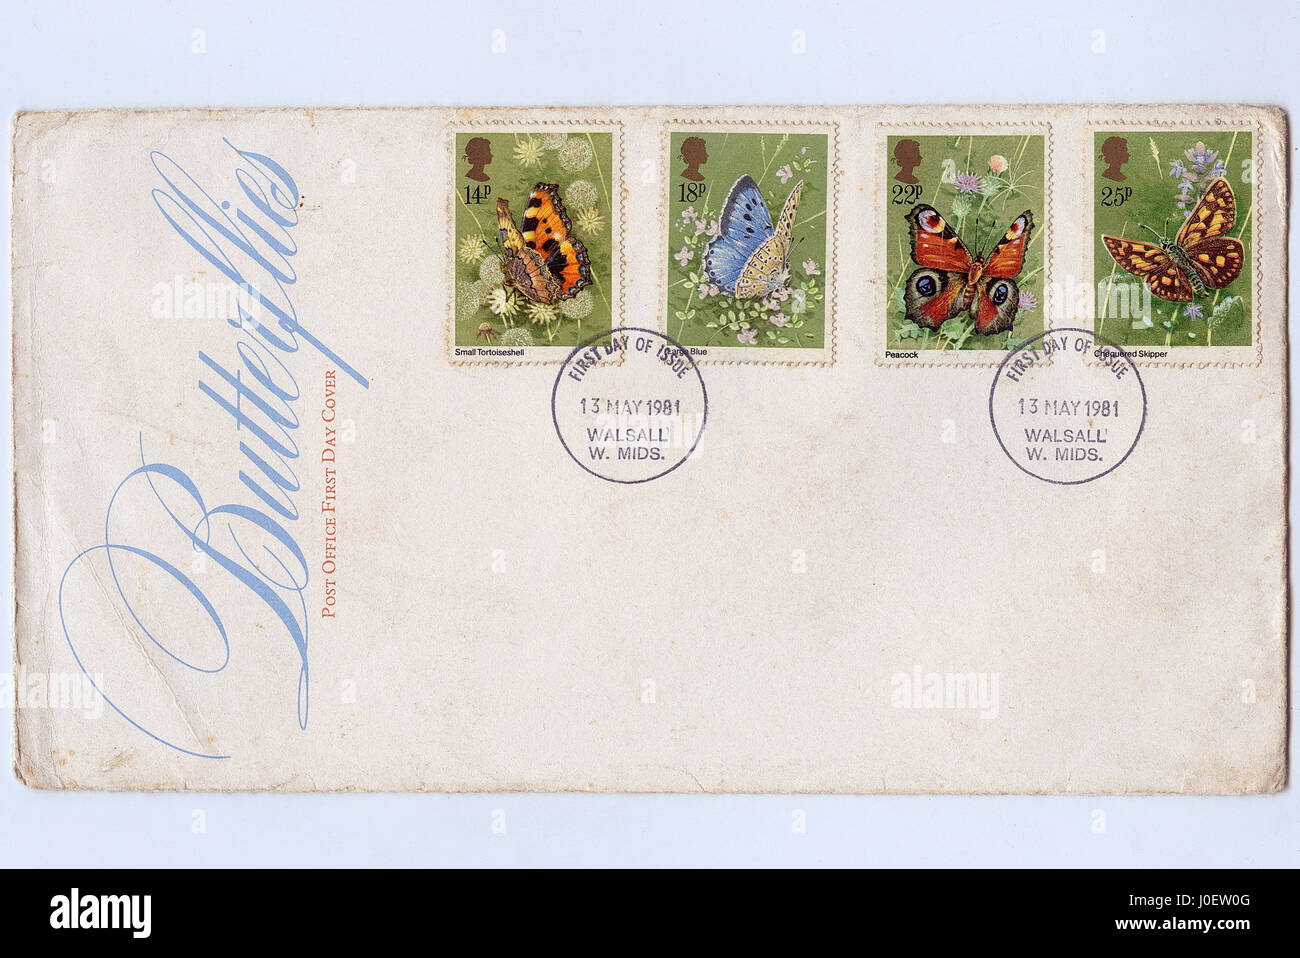 First day cover of butterflies issue postmark, postage stamps, walsall, west midlands, England, United Kingdom, - Stock Image